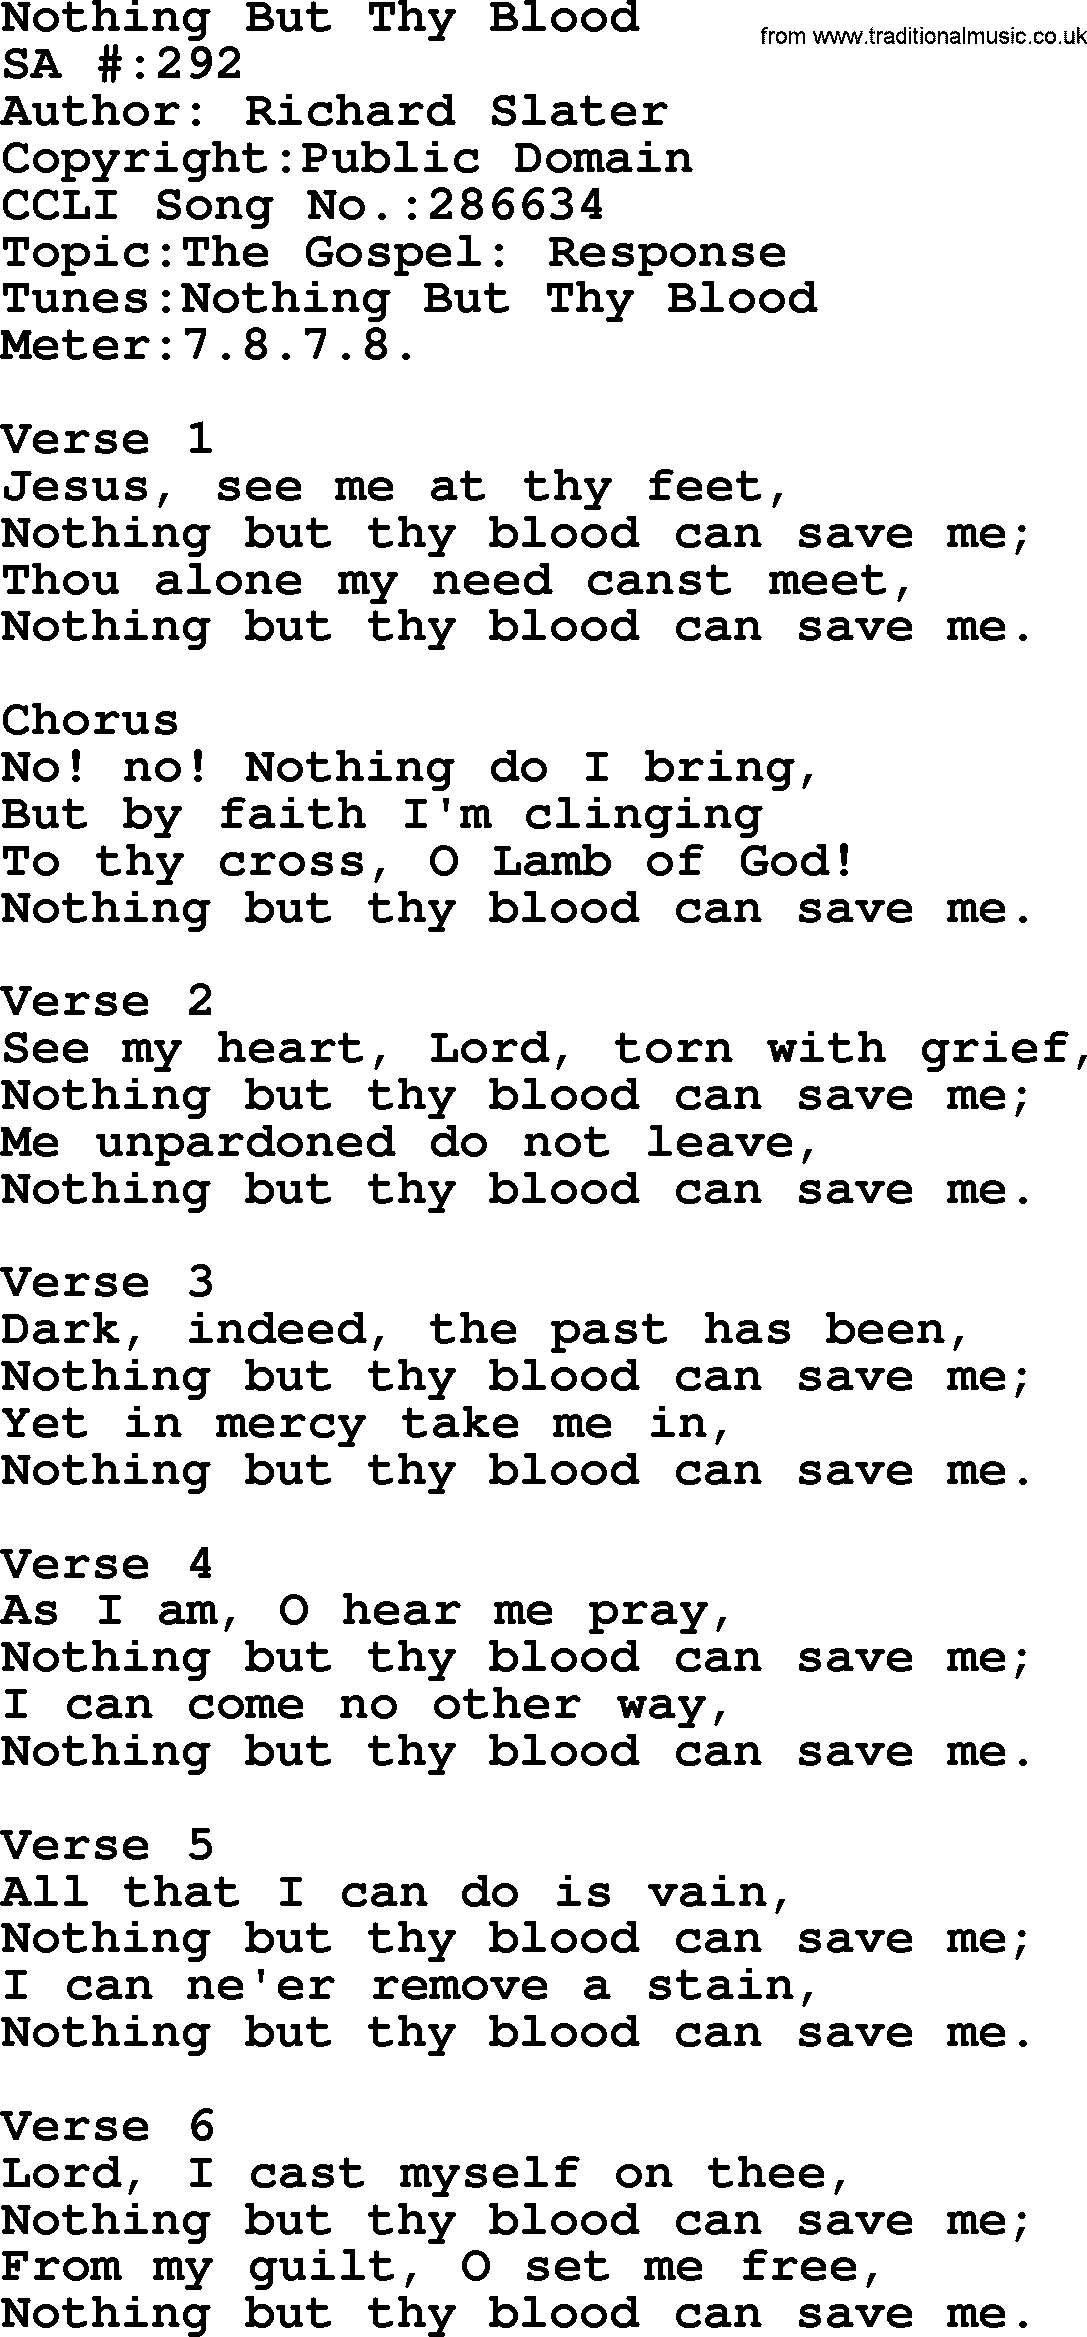 Salvation Army Hymnal Song: Nothing But Thy Blood, with